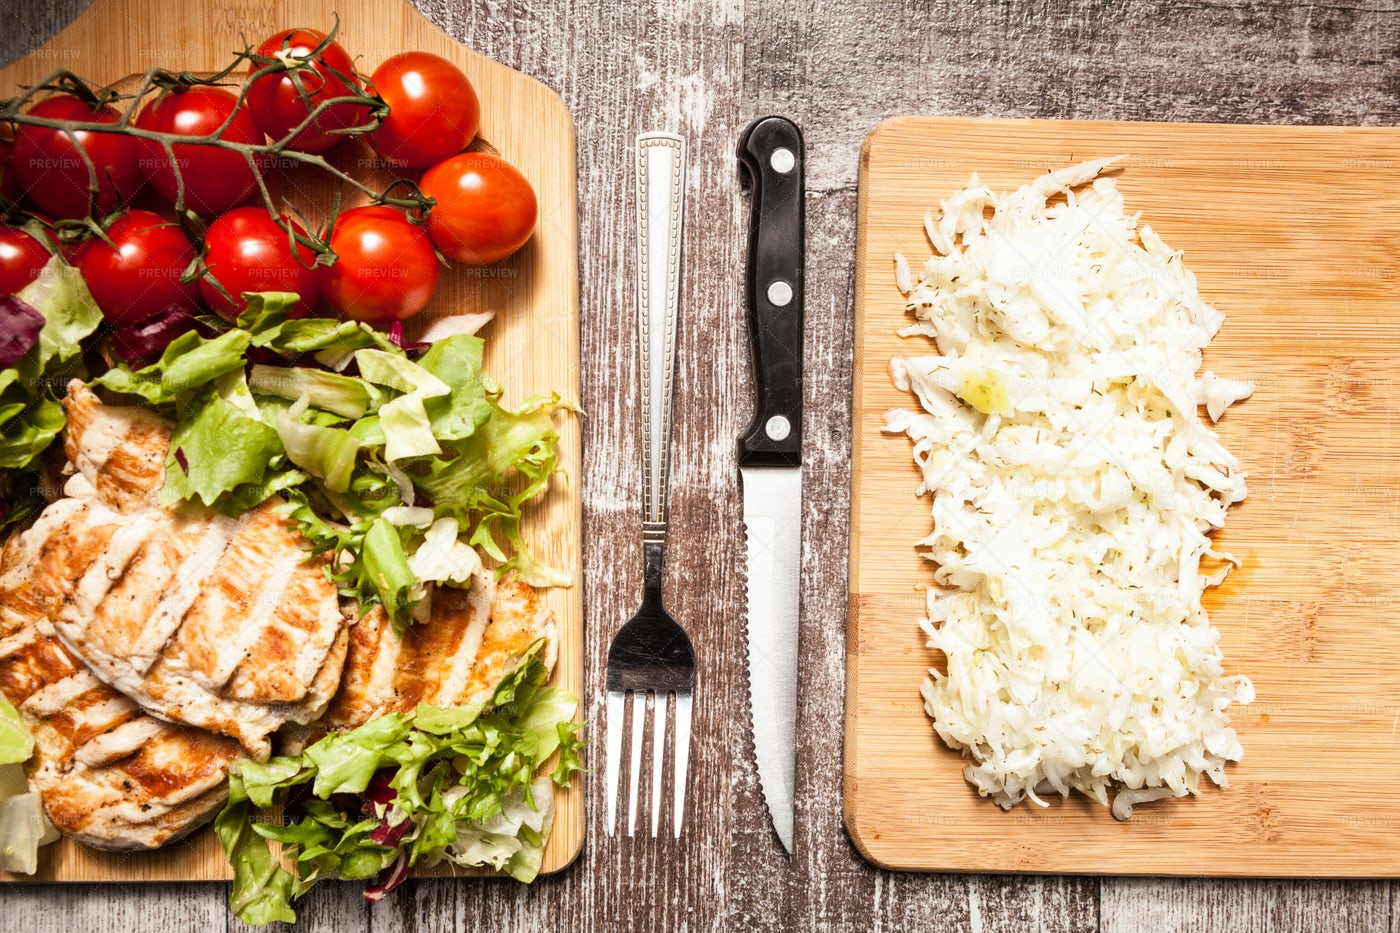 Chicken Salad And Cabbage: Stock Photos